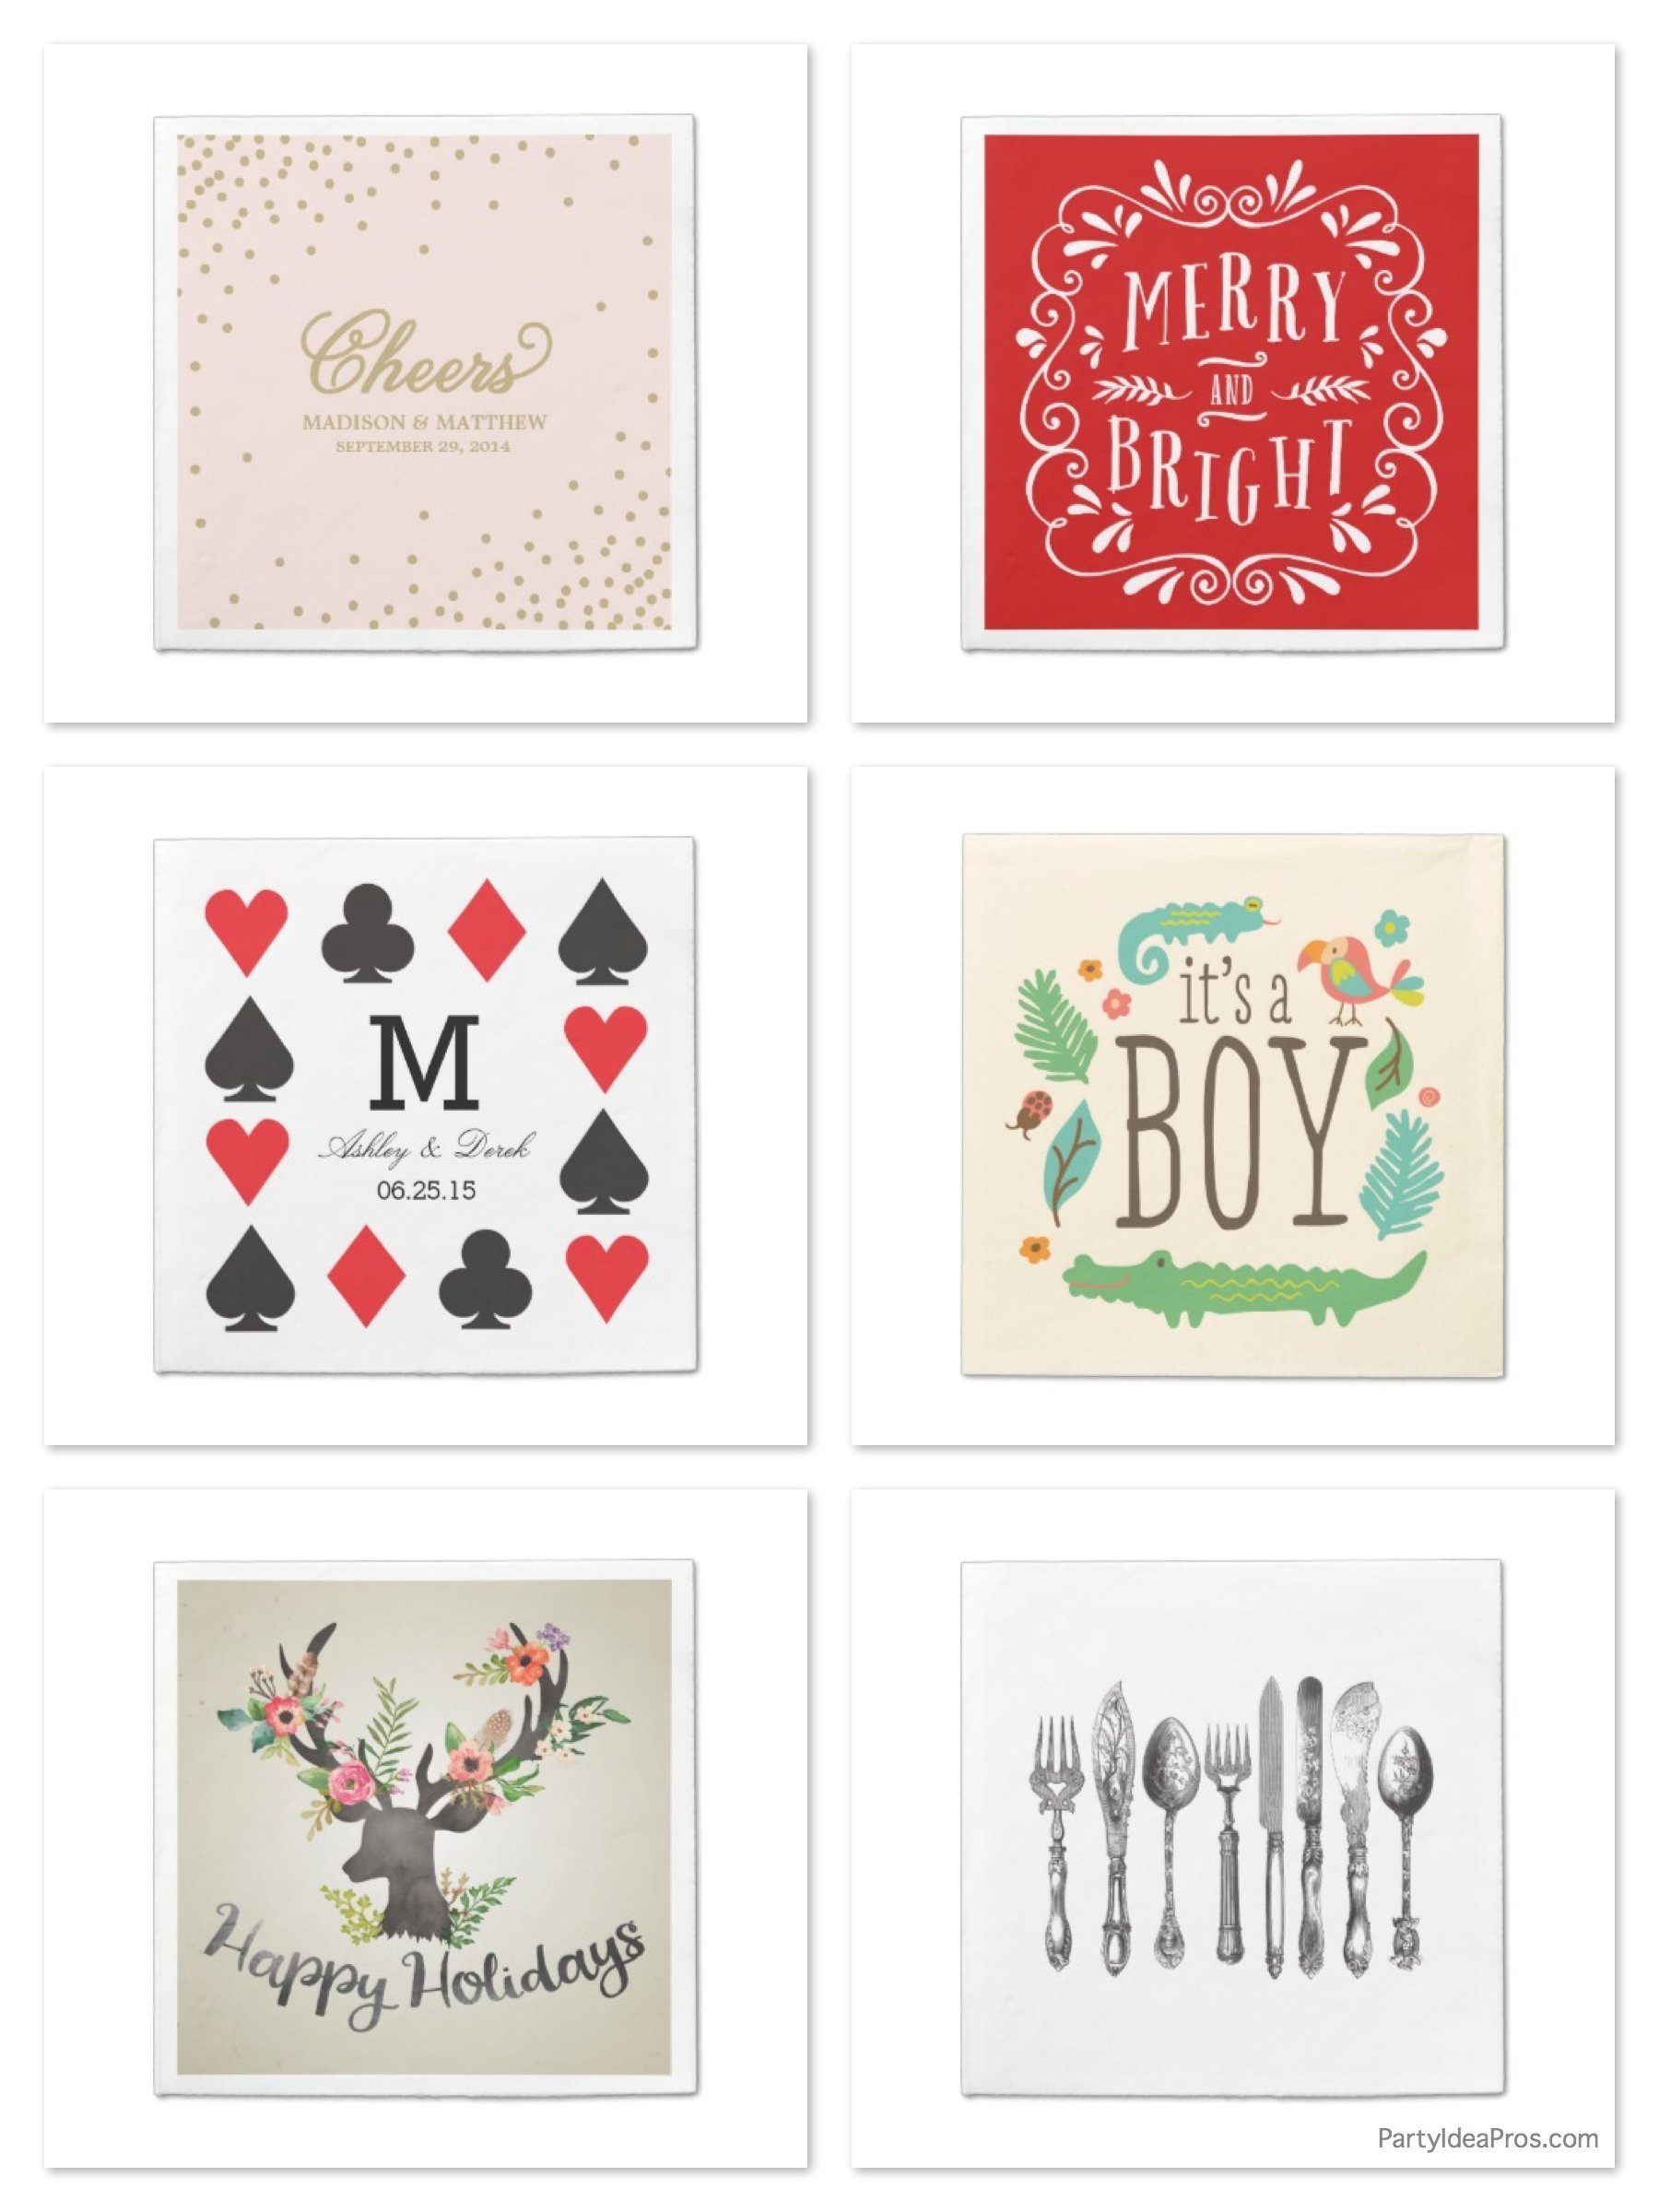 Custom Paper Napkins, Zazzle Custom Paper Napkin Sale - 65% OFF Today Only!